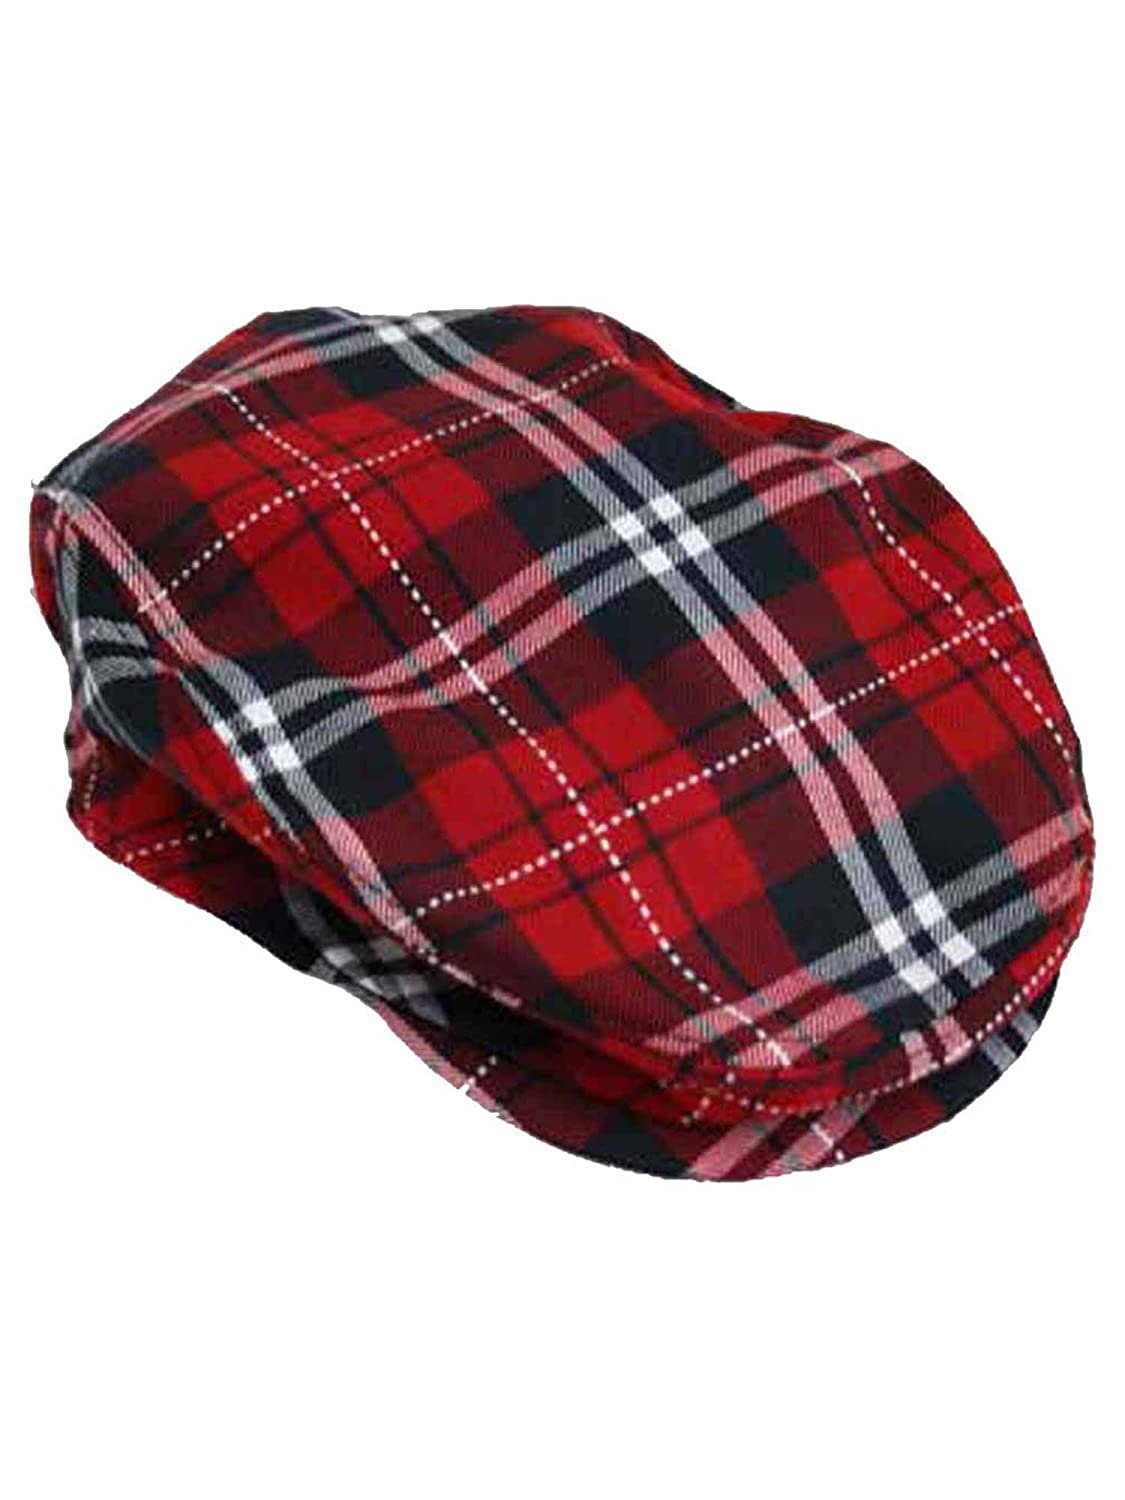 Red Plaid Snap Front Newsboy Golf Flat Ivy Cap Hat at Amazon Men s Clothing  store  Newsboy Caps a33c5413682